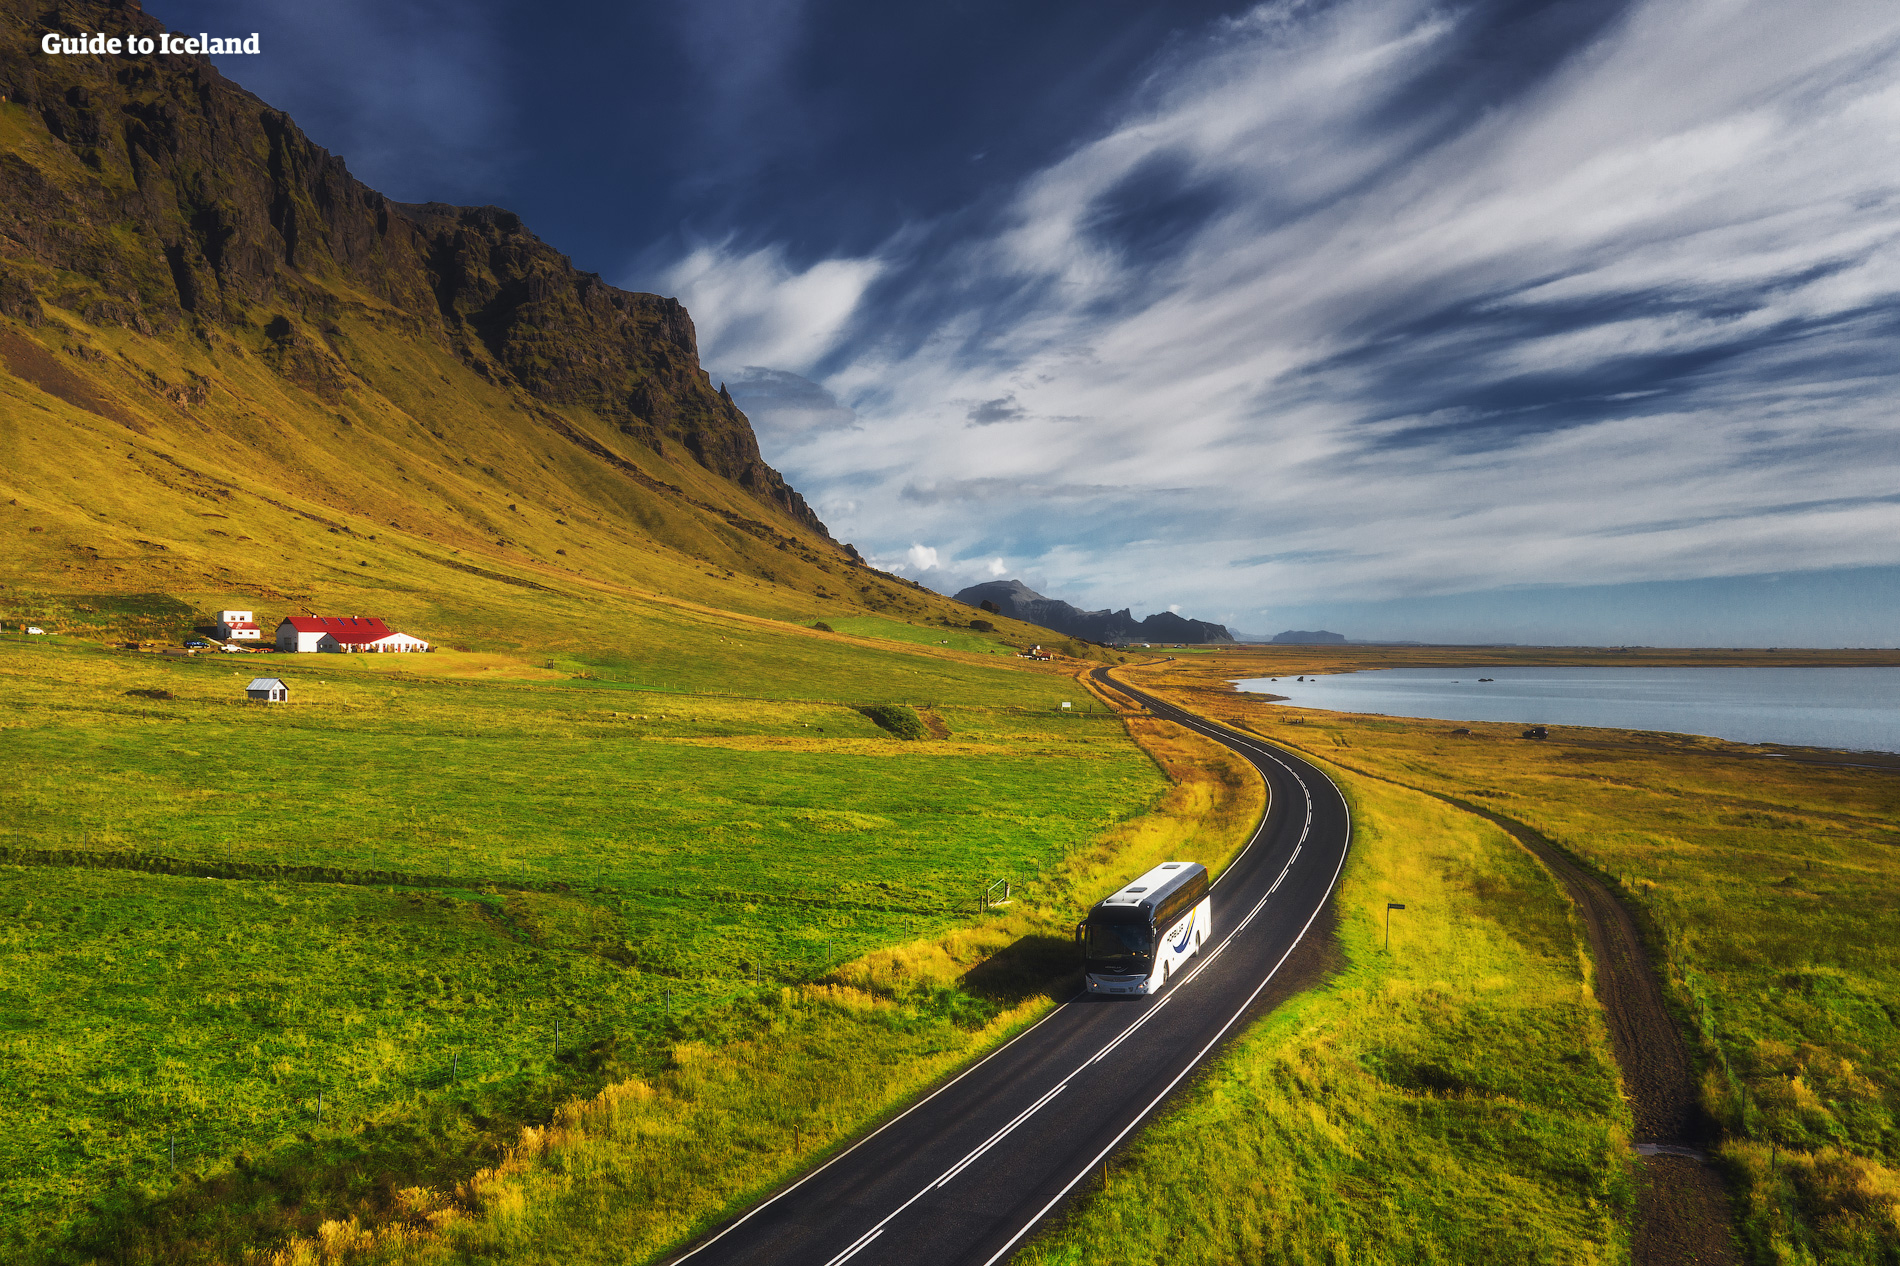 A self-drive in Iceland is a nice way to see the country